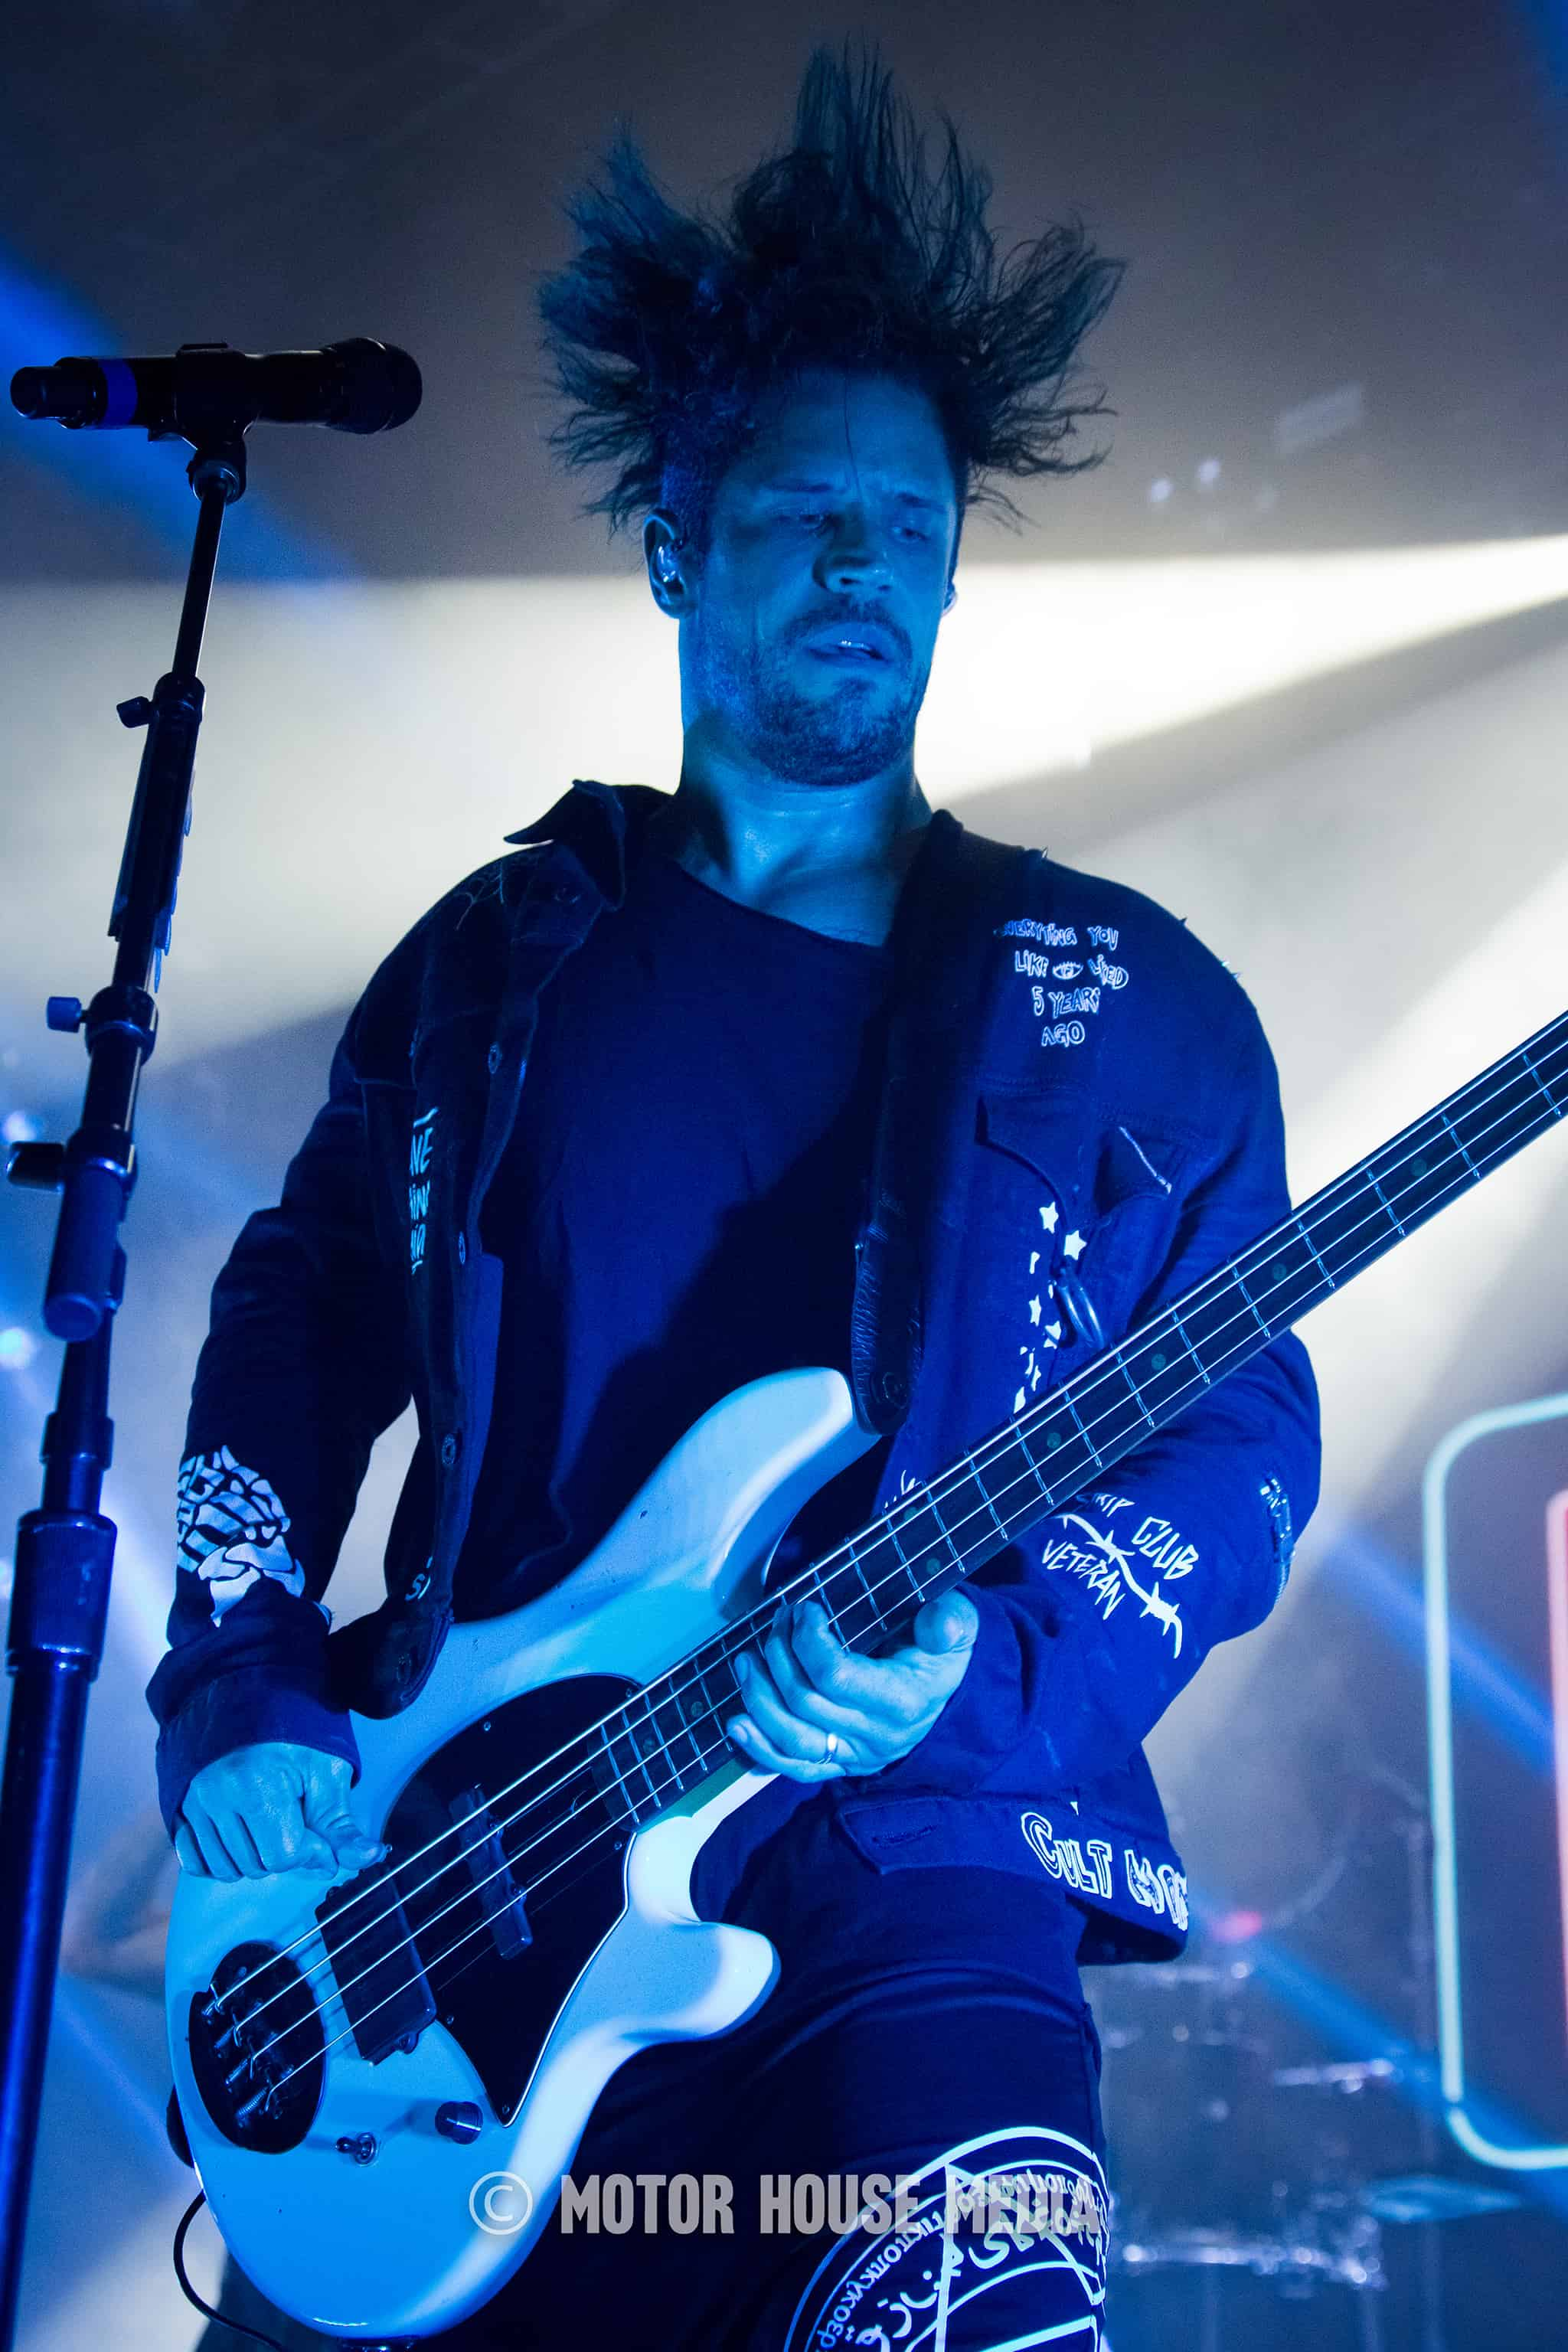 Papa Roach bass player Tobin rocking